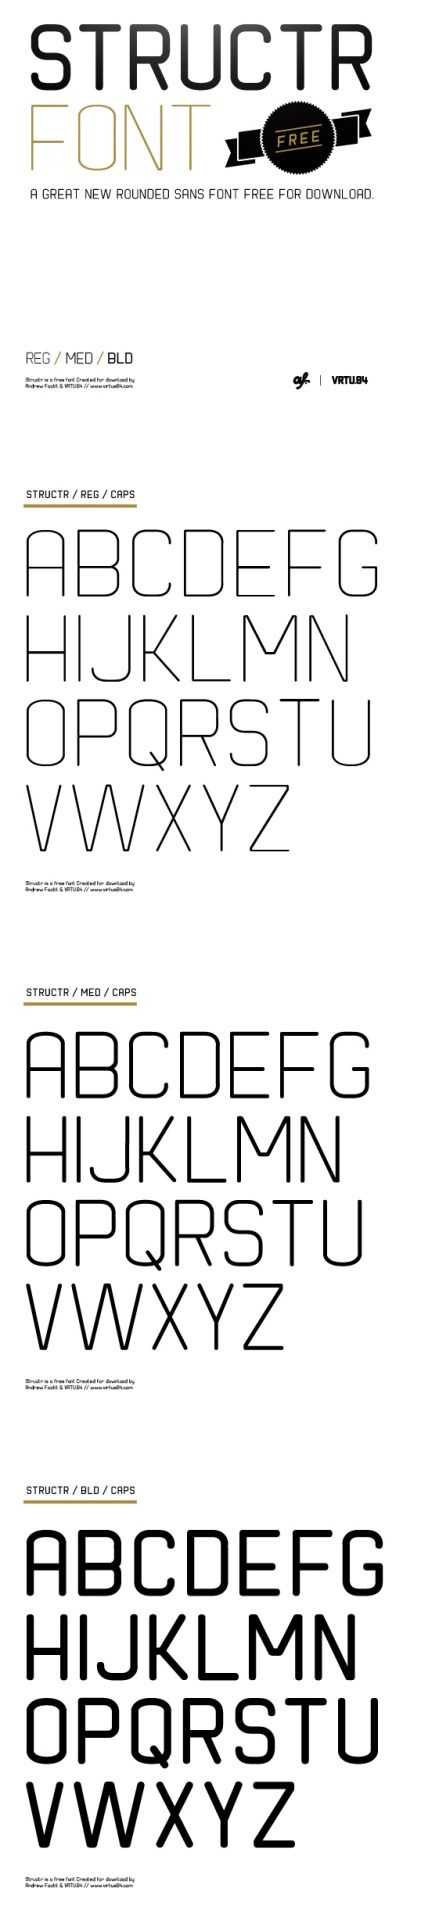 creative type face & typography @whitemaqui http://whitemaqui.com